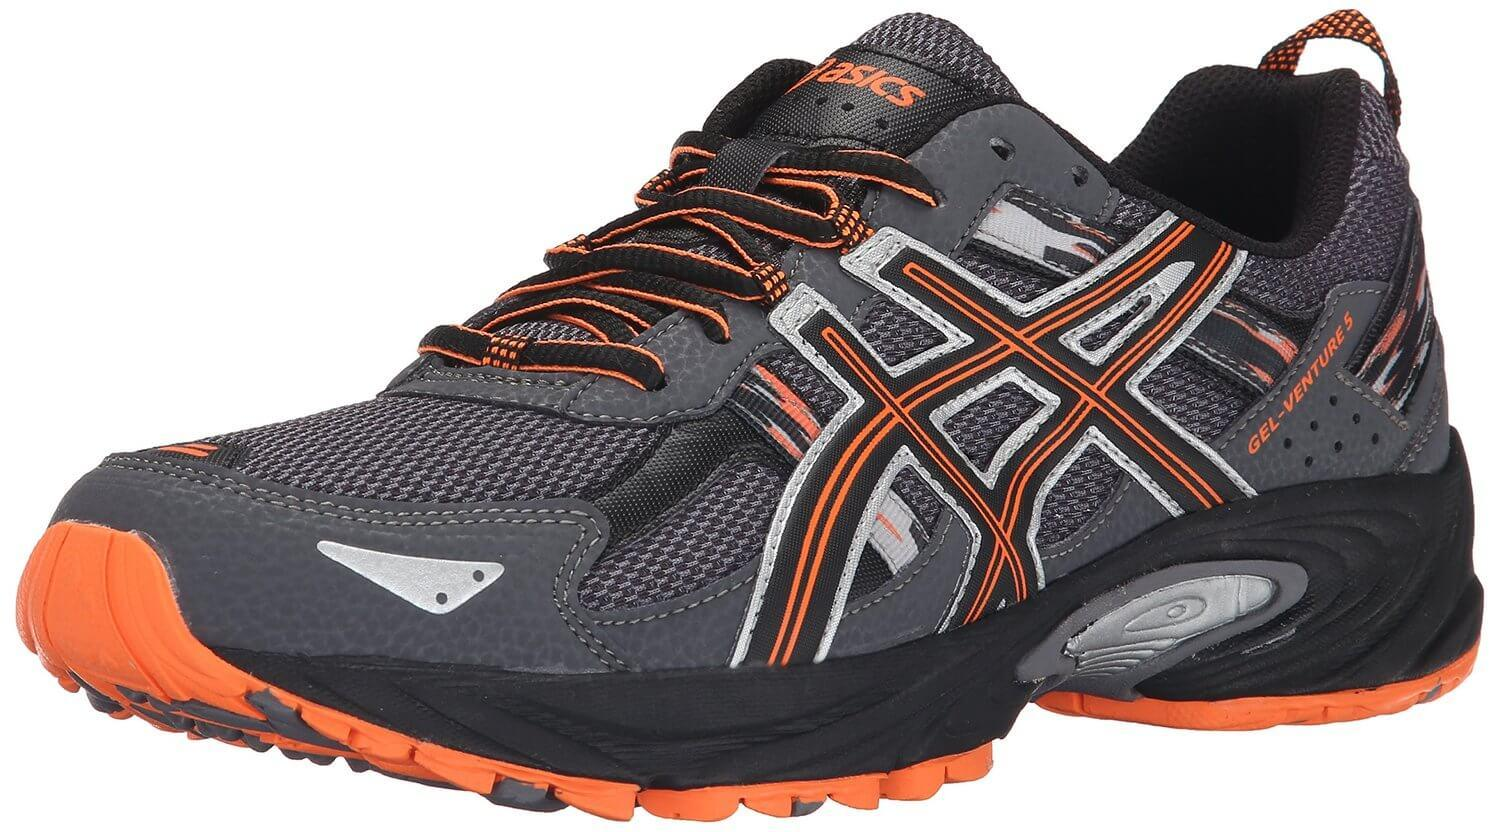 the Asics Gel Venture 5 is a low-cut trail running shoe that offers a ...